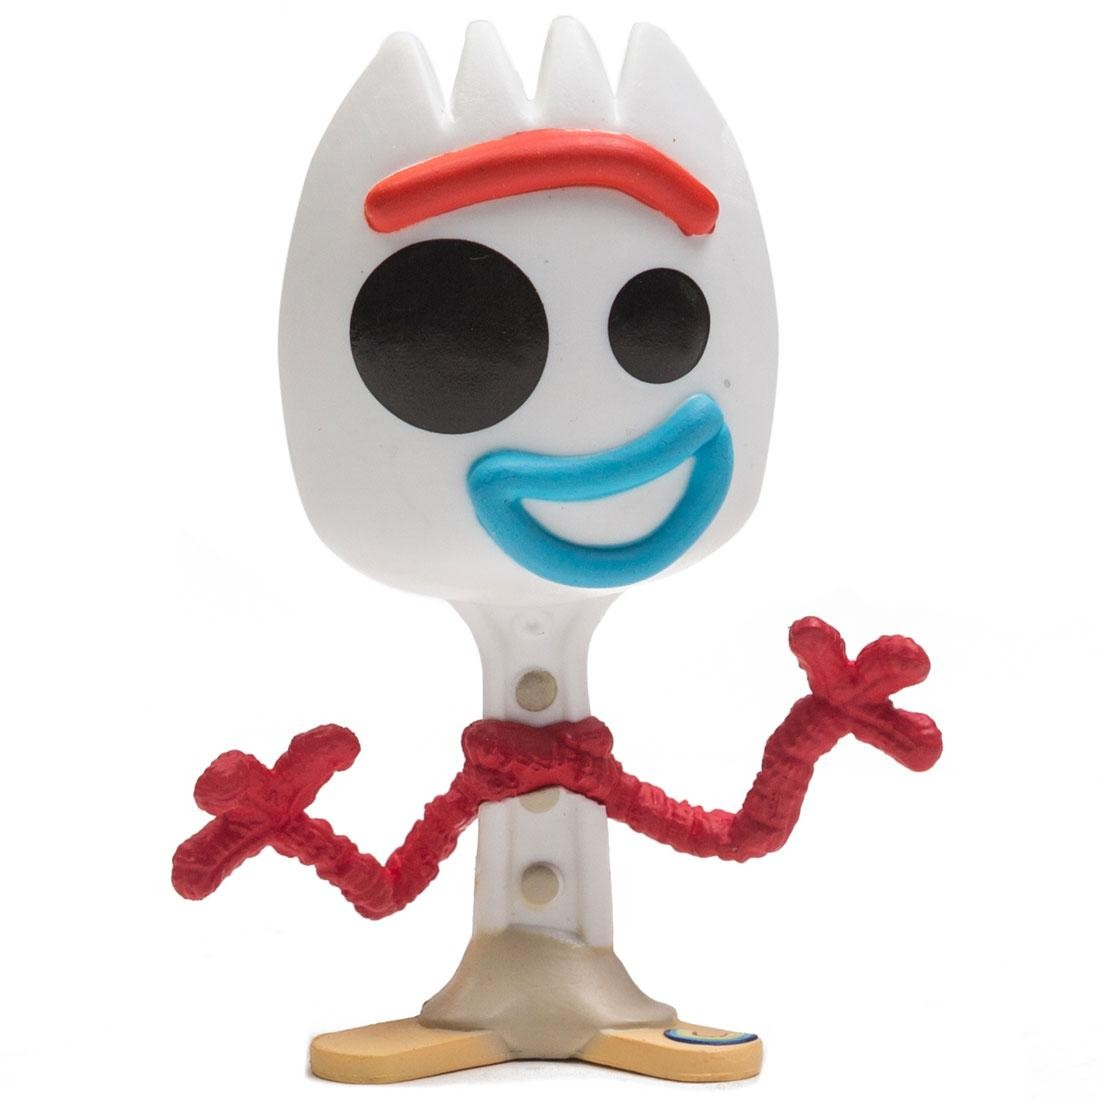 Funko POP Disney Pixar Toy Story 4 Forky (white)